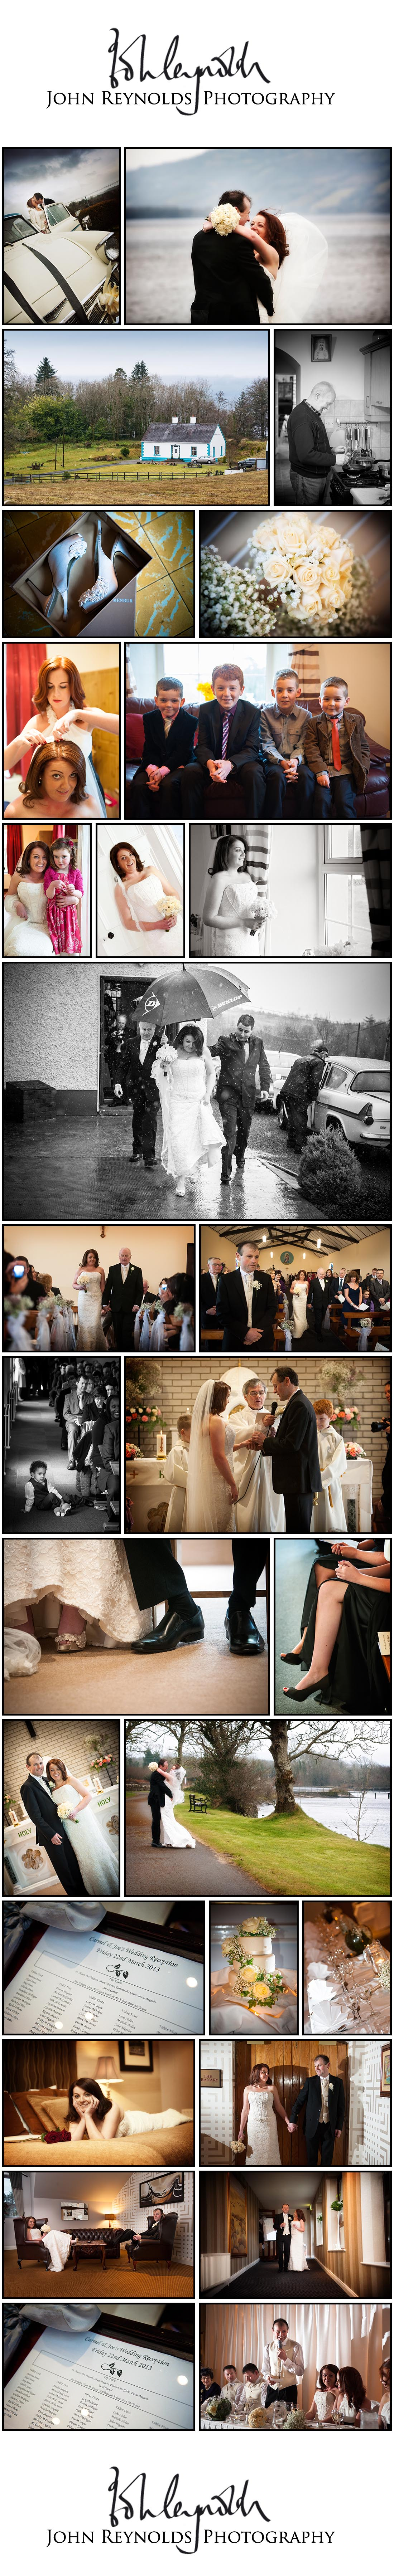 Blog Collage-Carmel & Joe F